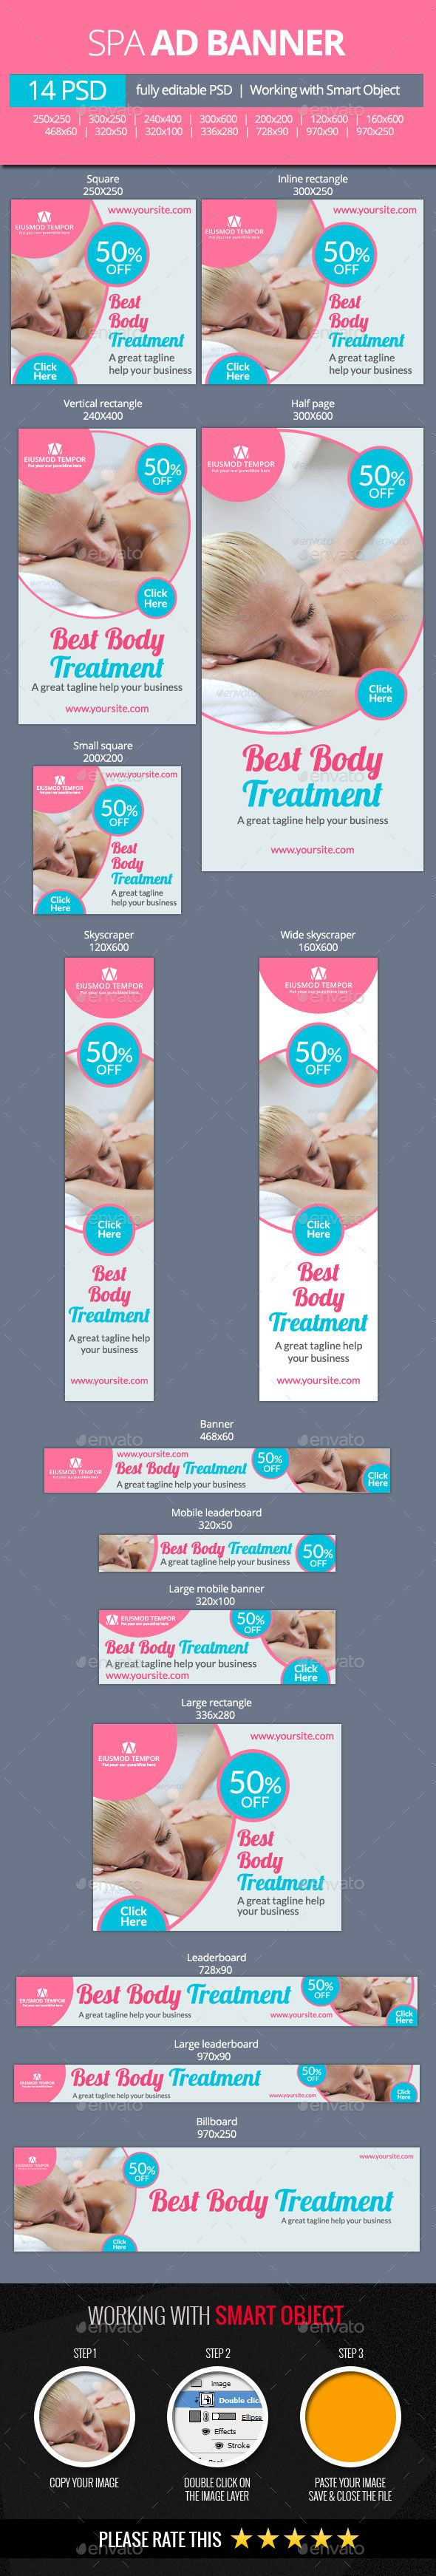 Spa and Beauty Treatments Web Banners - Banners & Ads Web Template PSD. Download here: http://graphicriver.net/item/spa-and-beauty-treatments-web-banners/11101606?s_rank=1178&ref=yinkira